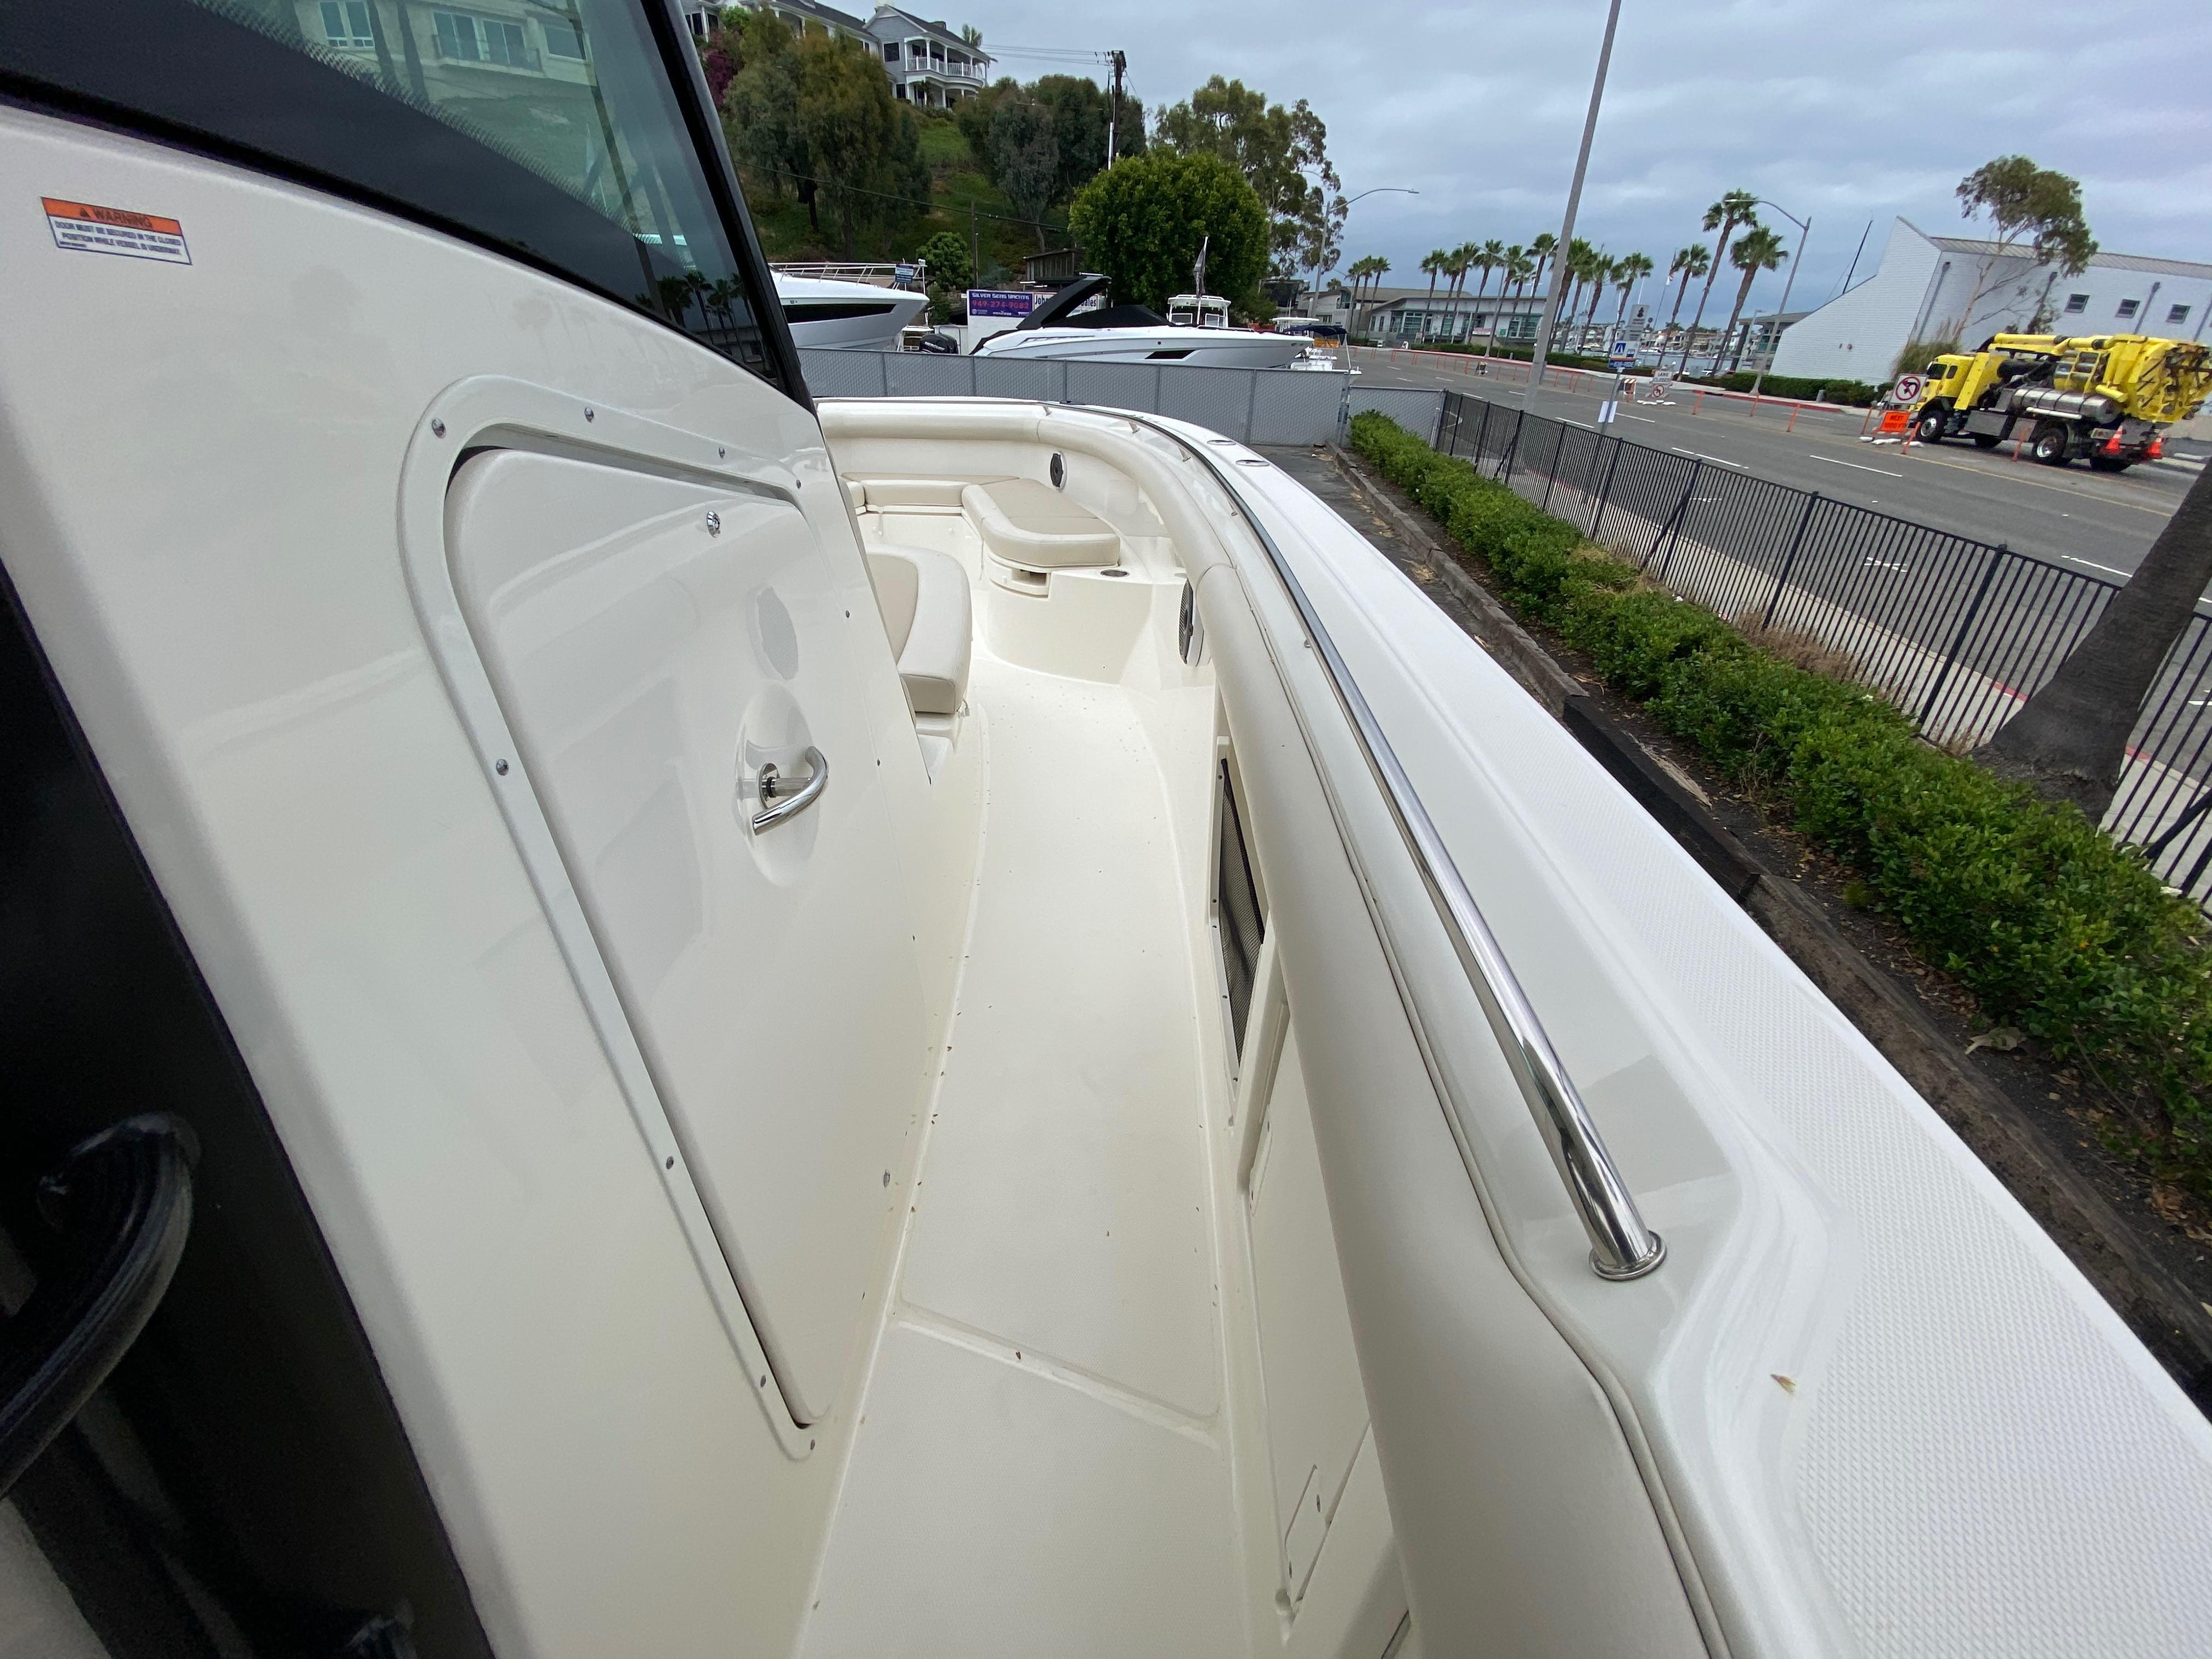 2020 Boston Whaler 350 Outrage #BW1207K inventory image at Sun Country Coastal in Newport Beach